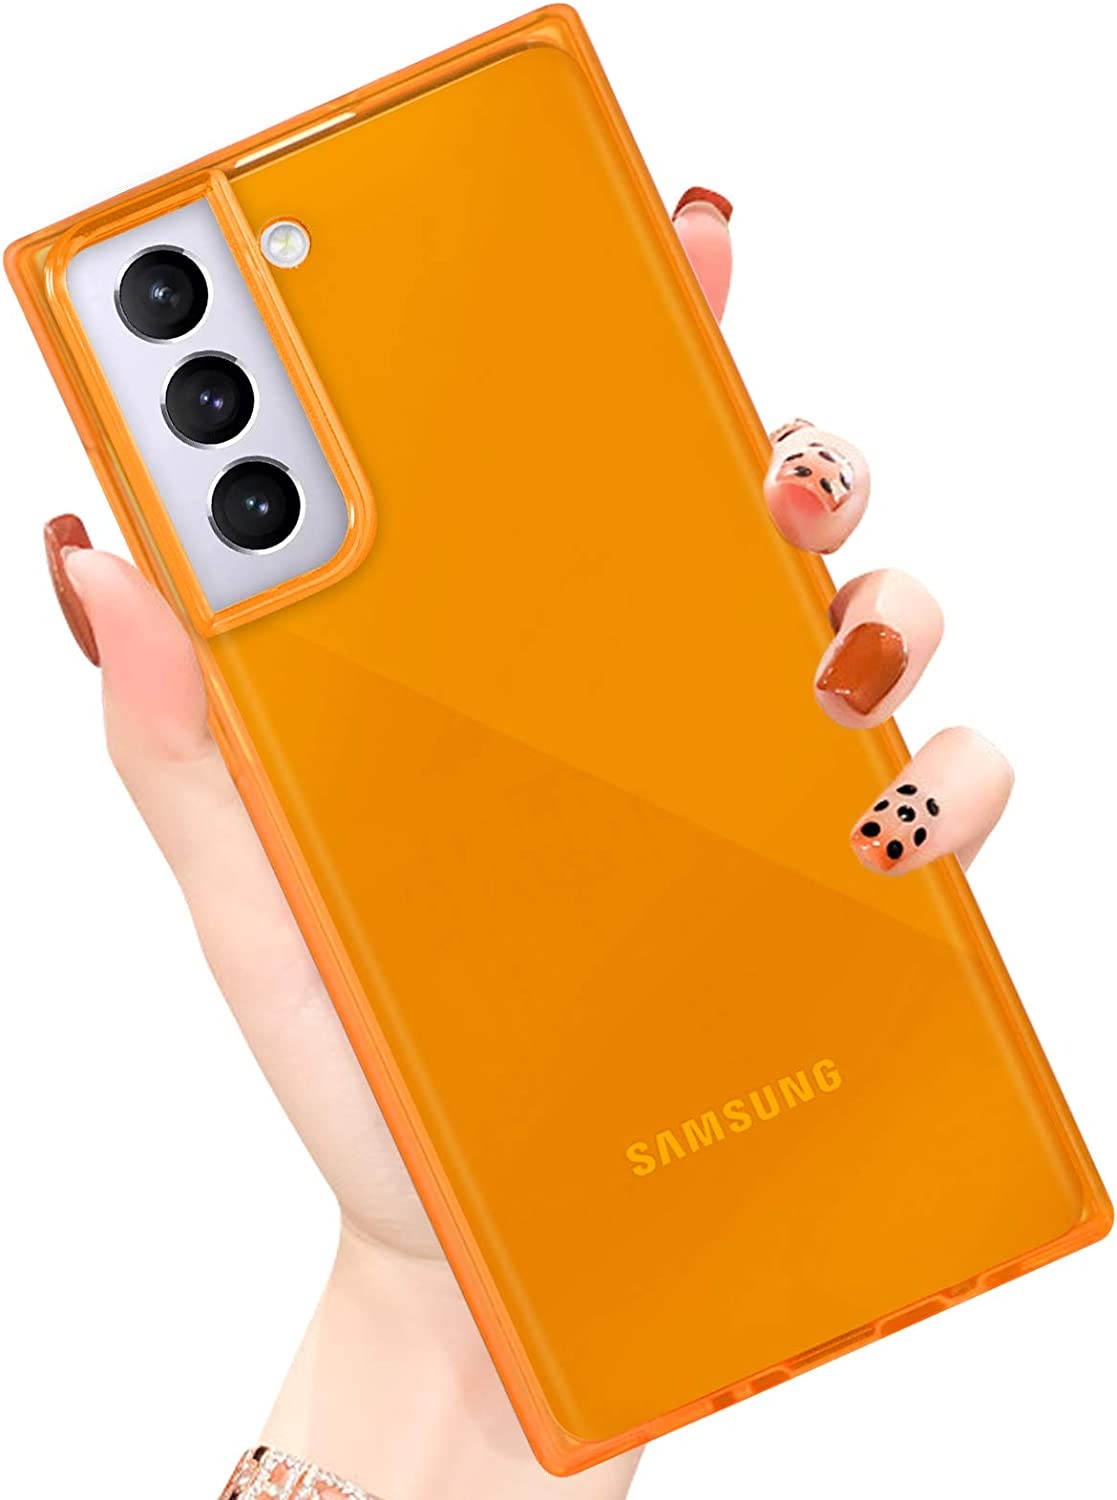 PERRKLD Compatible with Samsung Galaxy S21 Plus Case Square Soft TPU Bumper Slim Clear Transparent Reinforced Corners Shockproof Phone Case for Samsung Galaxy S21 Plus -Clear Orange